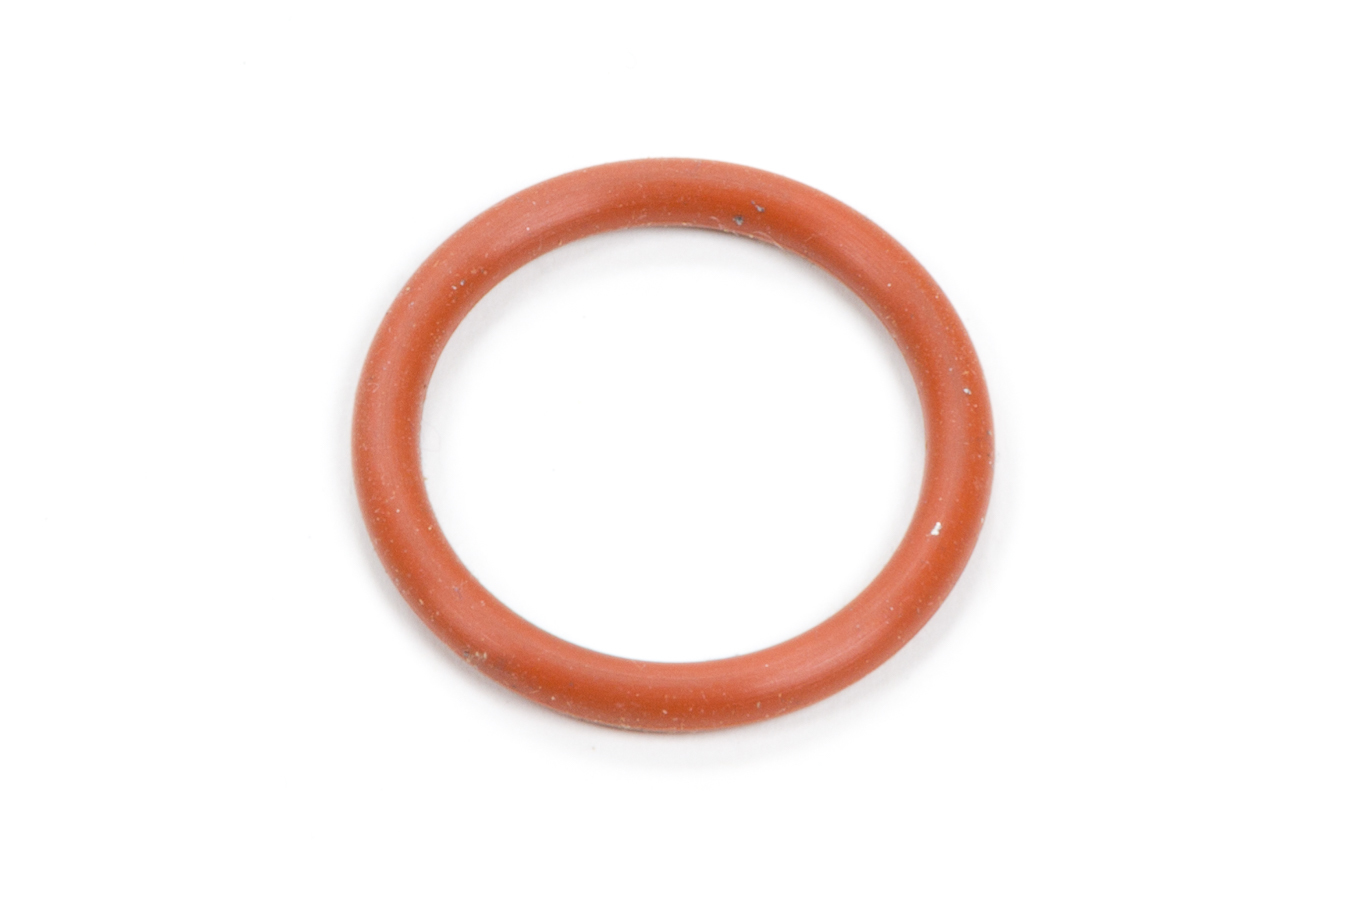 Cometic Gaskets C15158 O-Ring, Rubber, Lower Coolant Hose, Ford PowerStroke, Ford Fullsize Truck 2008-10, Each